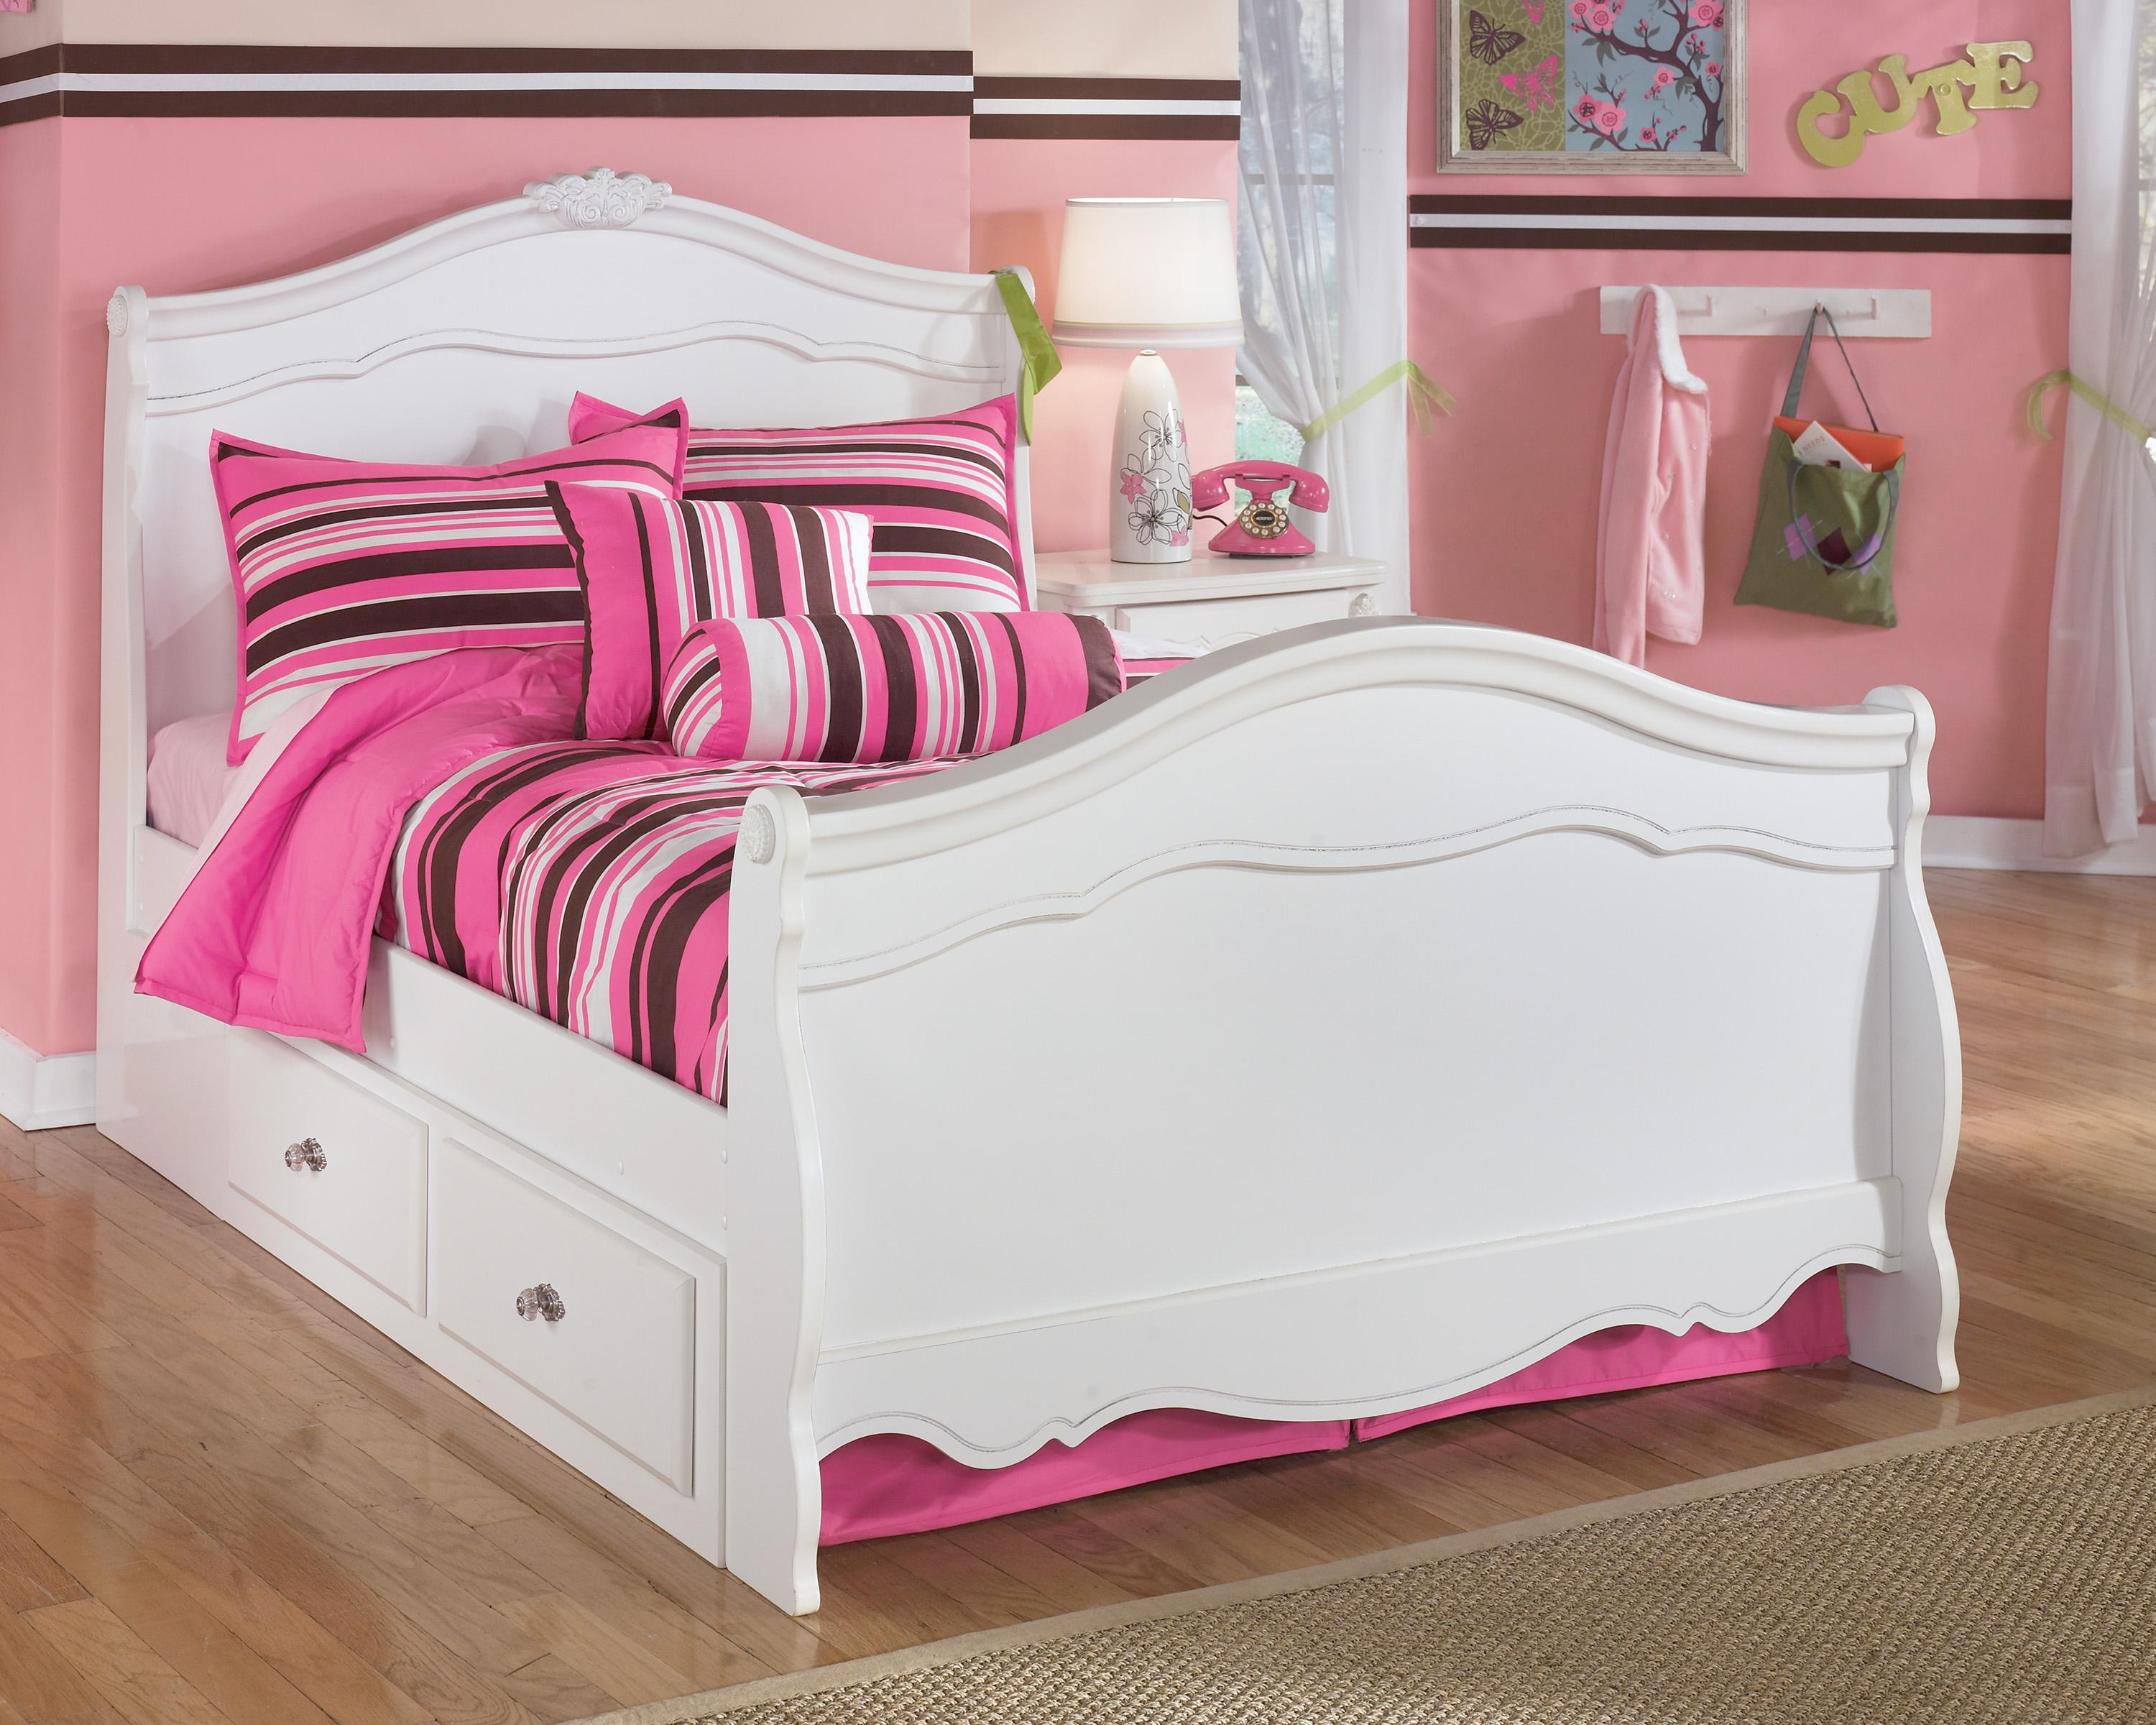 Exquisite Full Sleigh Bed with Under Bed Storage by Ashley (Signature Design) at Johnny Janosik